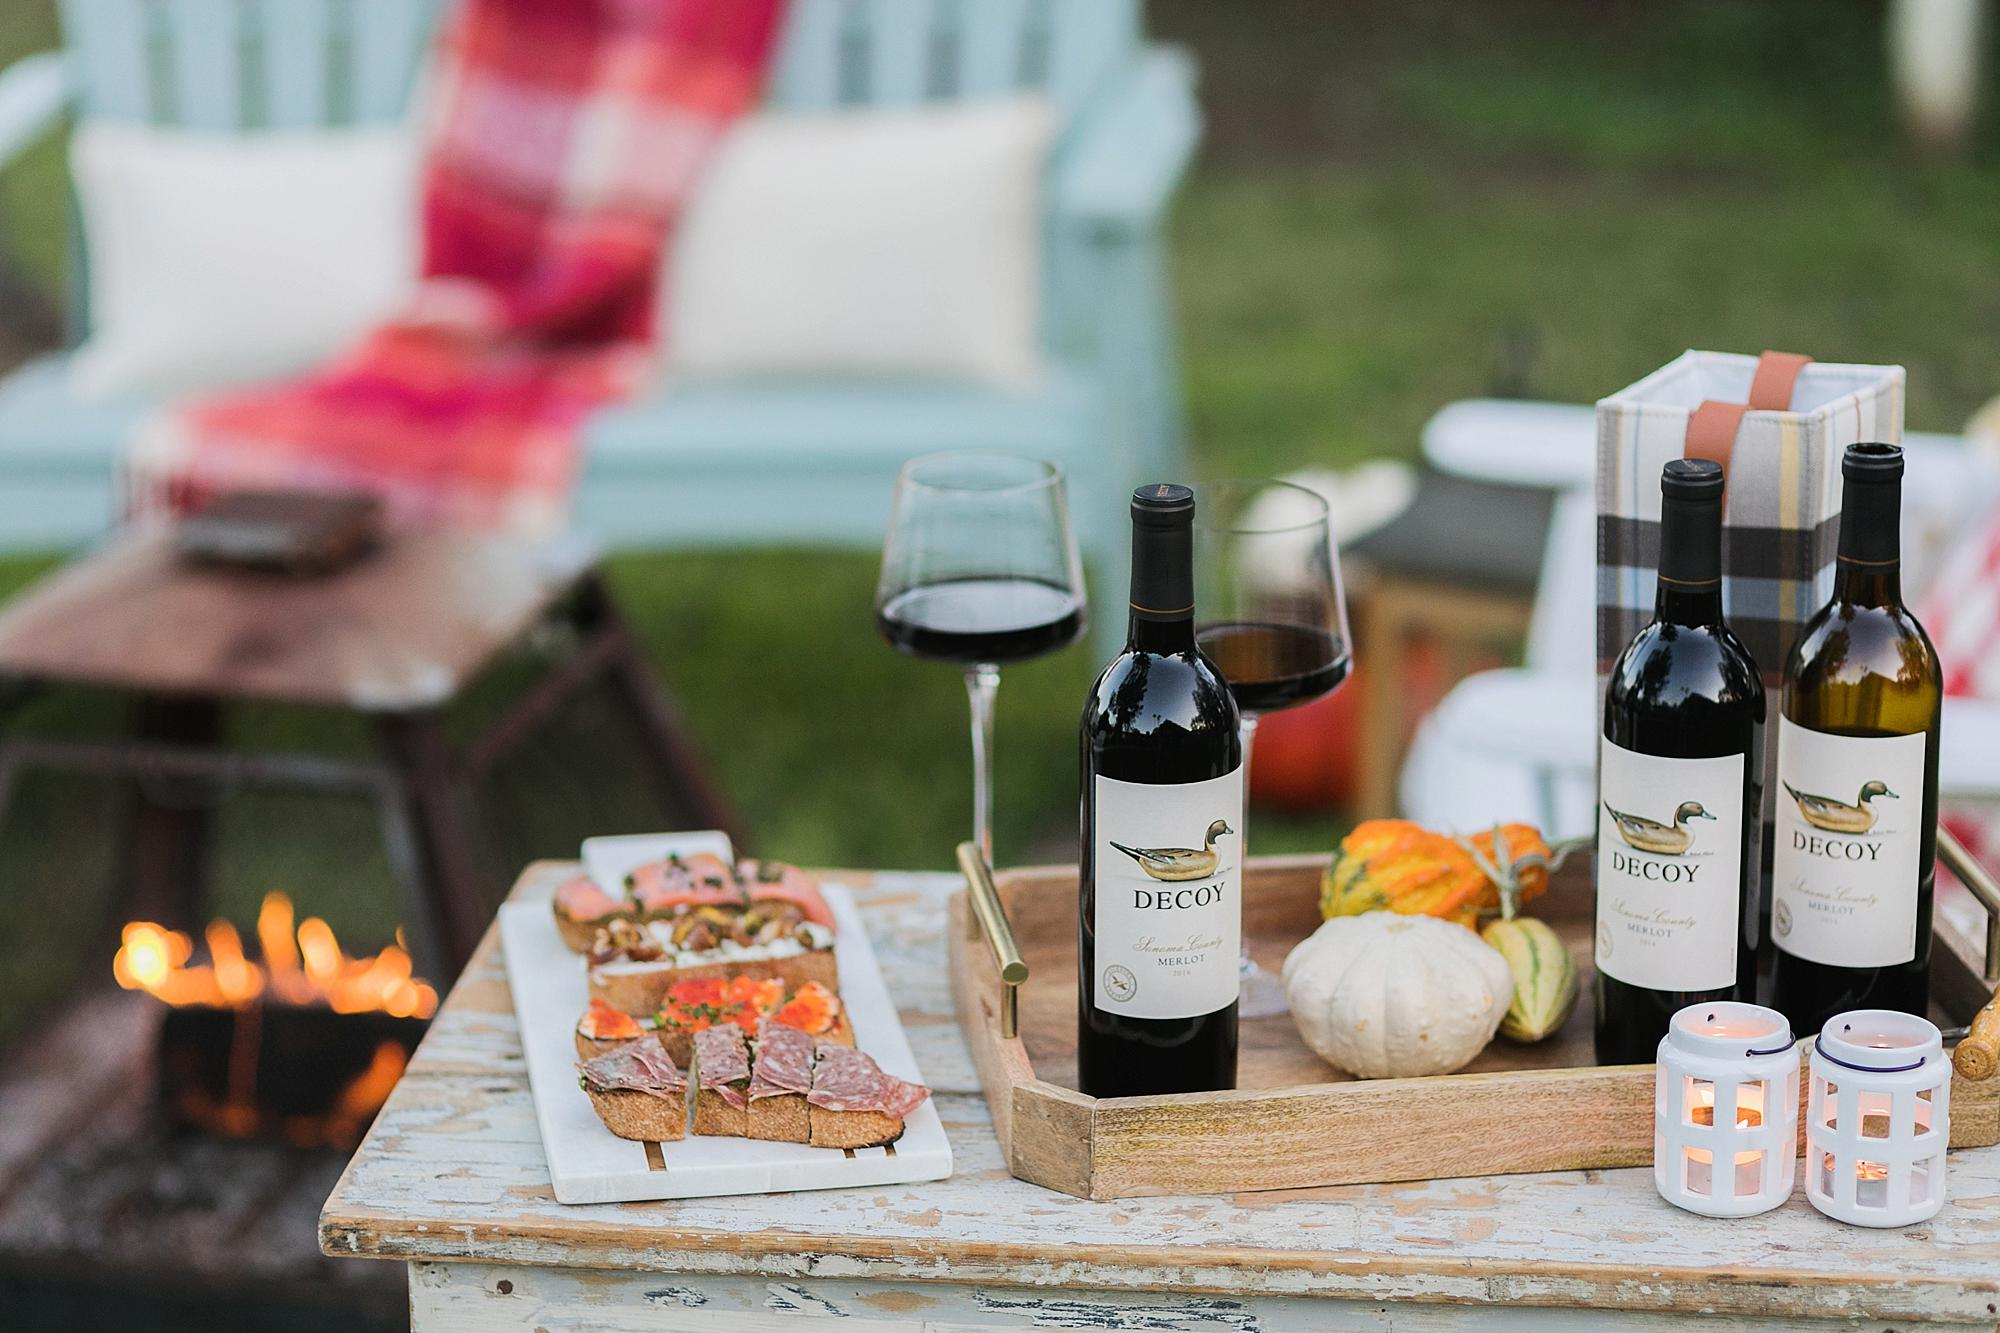 merlot decoy wine for merlot month in October. fire pit for fall gathering outdoors and bruschetta board for wine